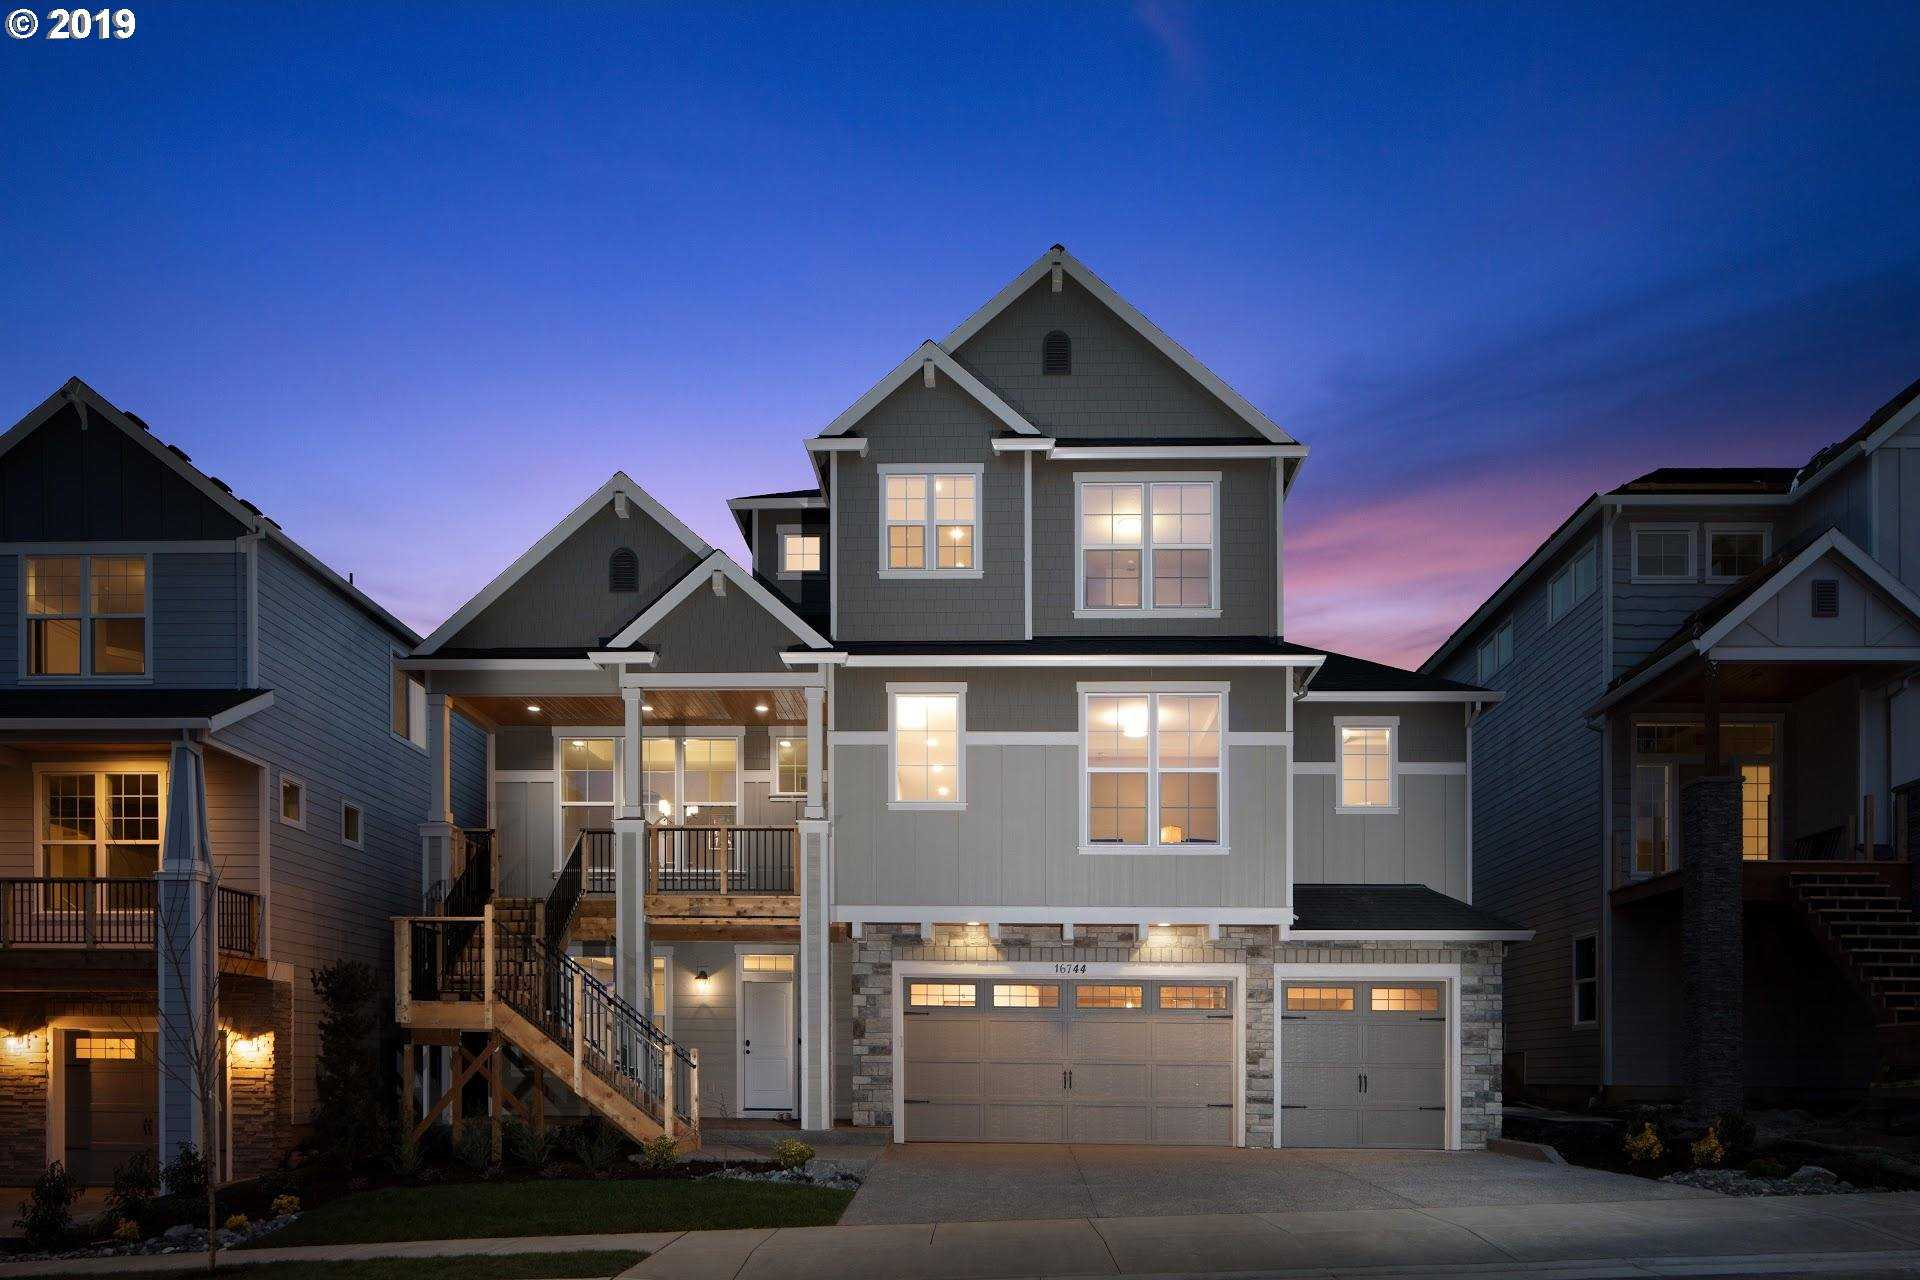 $859,950 - 6Br/4Ba -  for Sale in Highlands At North Bethany, Portland